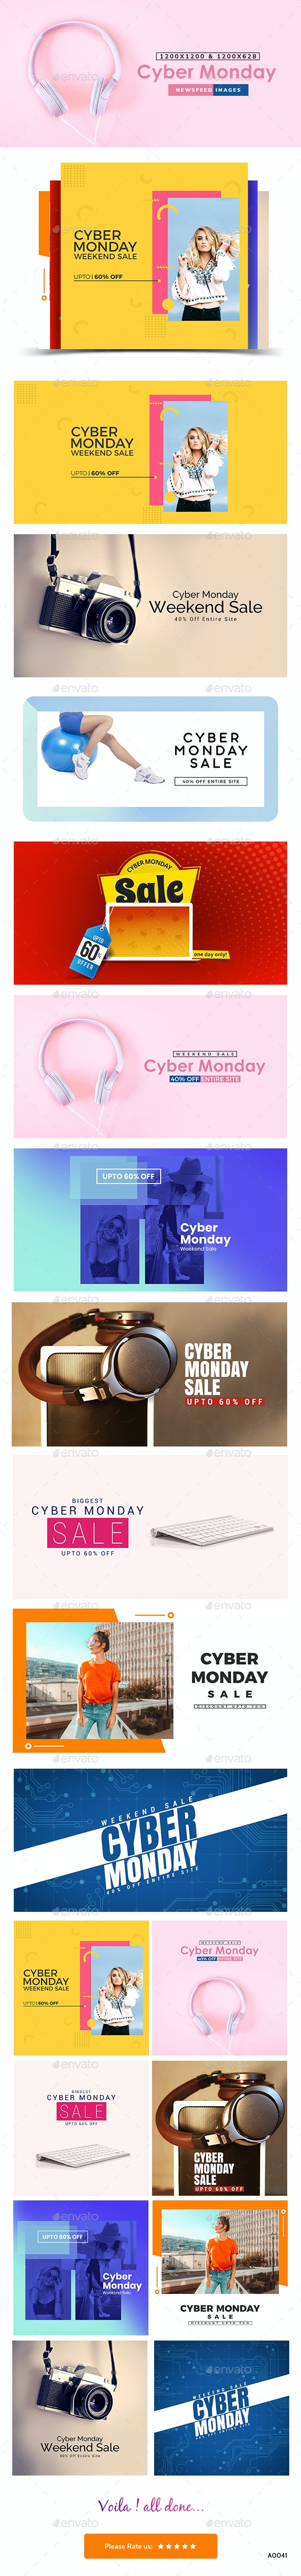 Cyber Monday Sale Facebook and Instagram Newsfeed Banners - 10 Designs - Miscellaneous Social Media